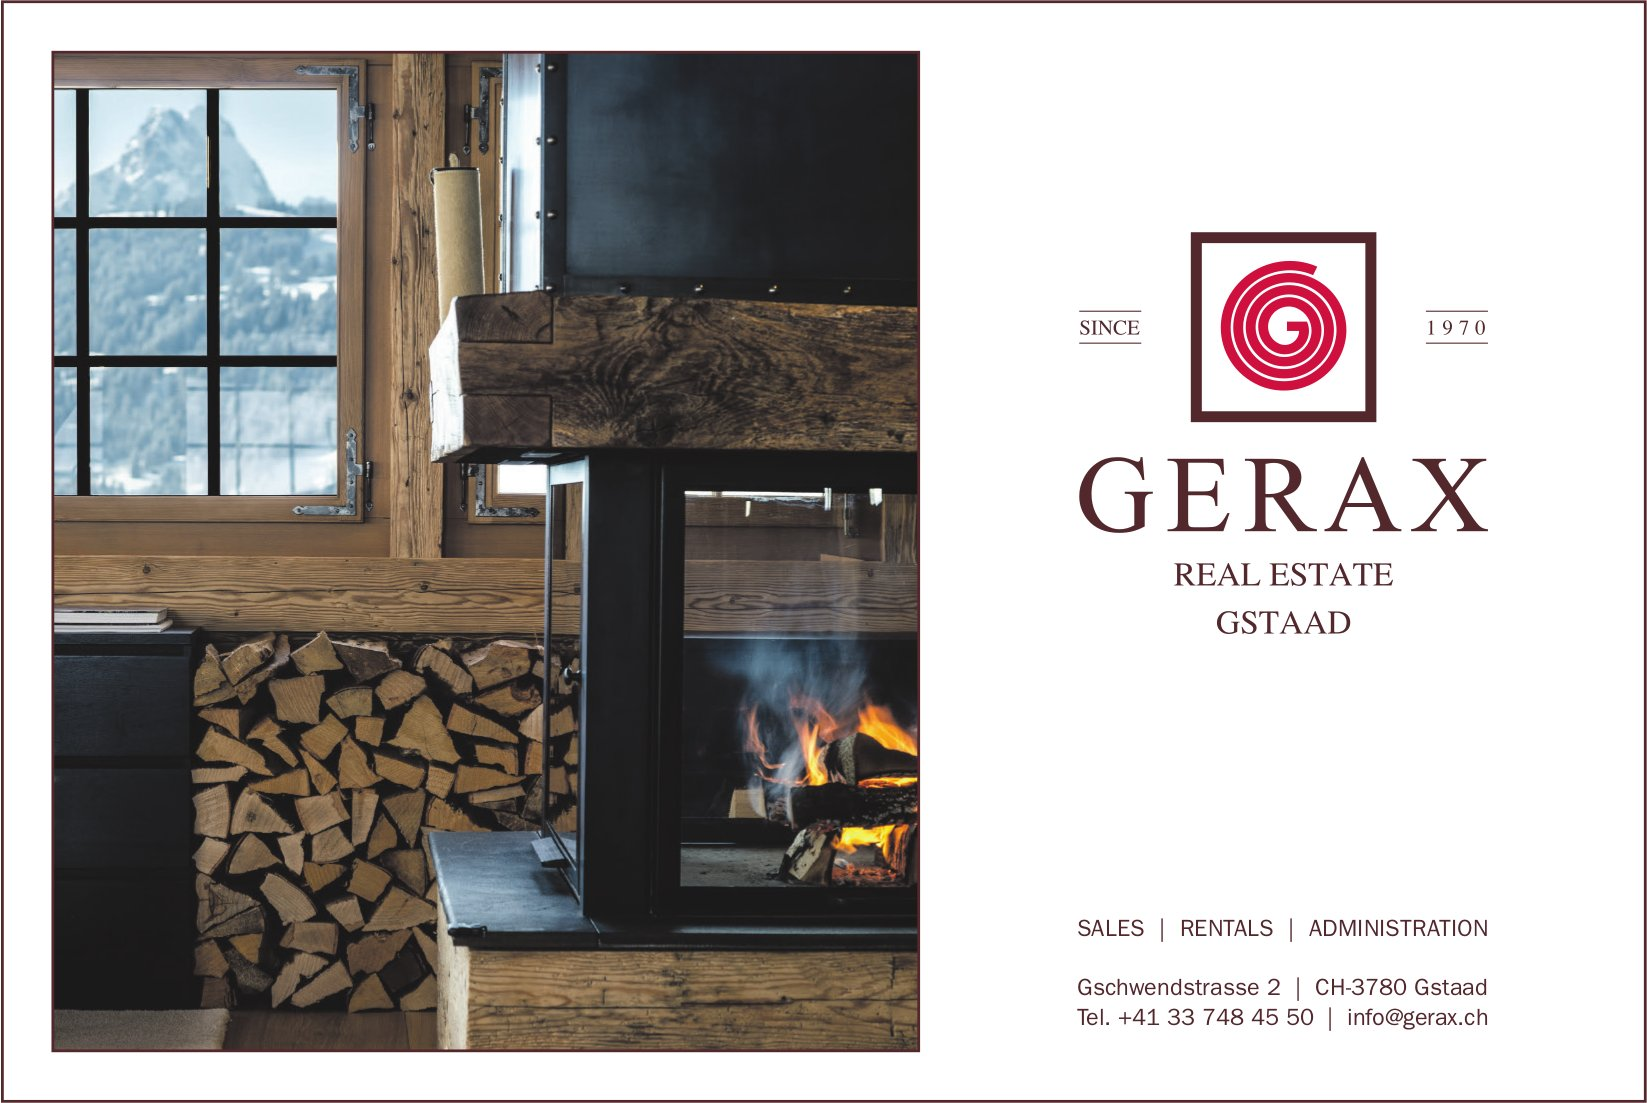 GERAX, REAL ESTATE,